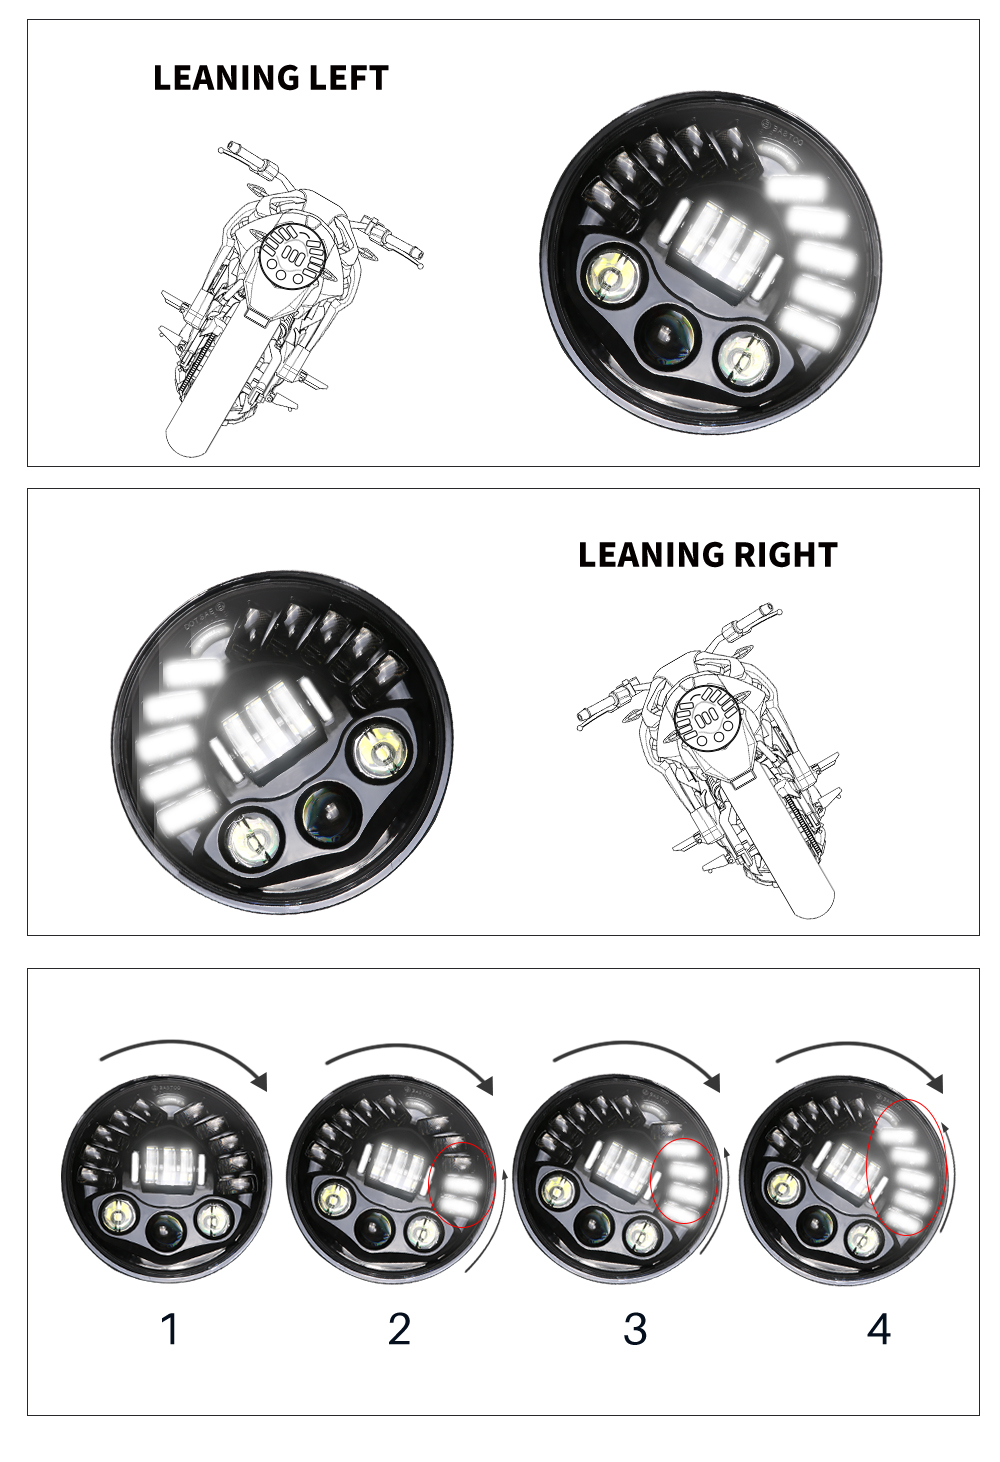 For Harley Yamaha 7 Motorcycle Adaptive Projector Daymaker Headlight LED Light (5)